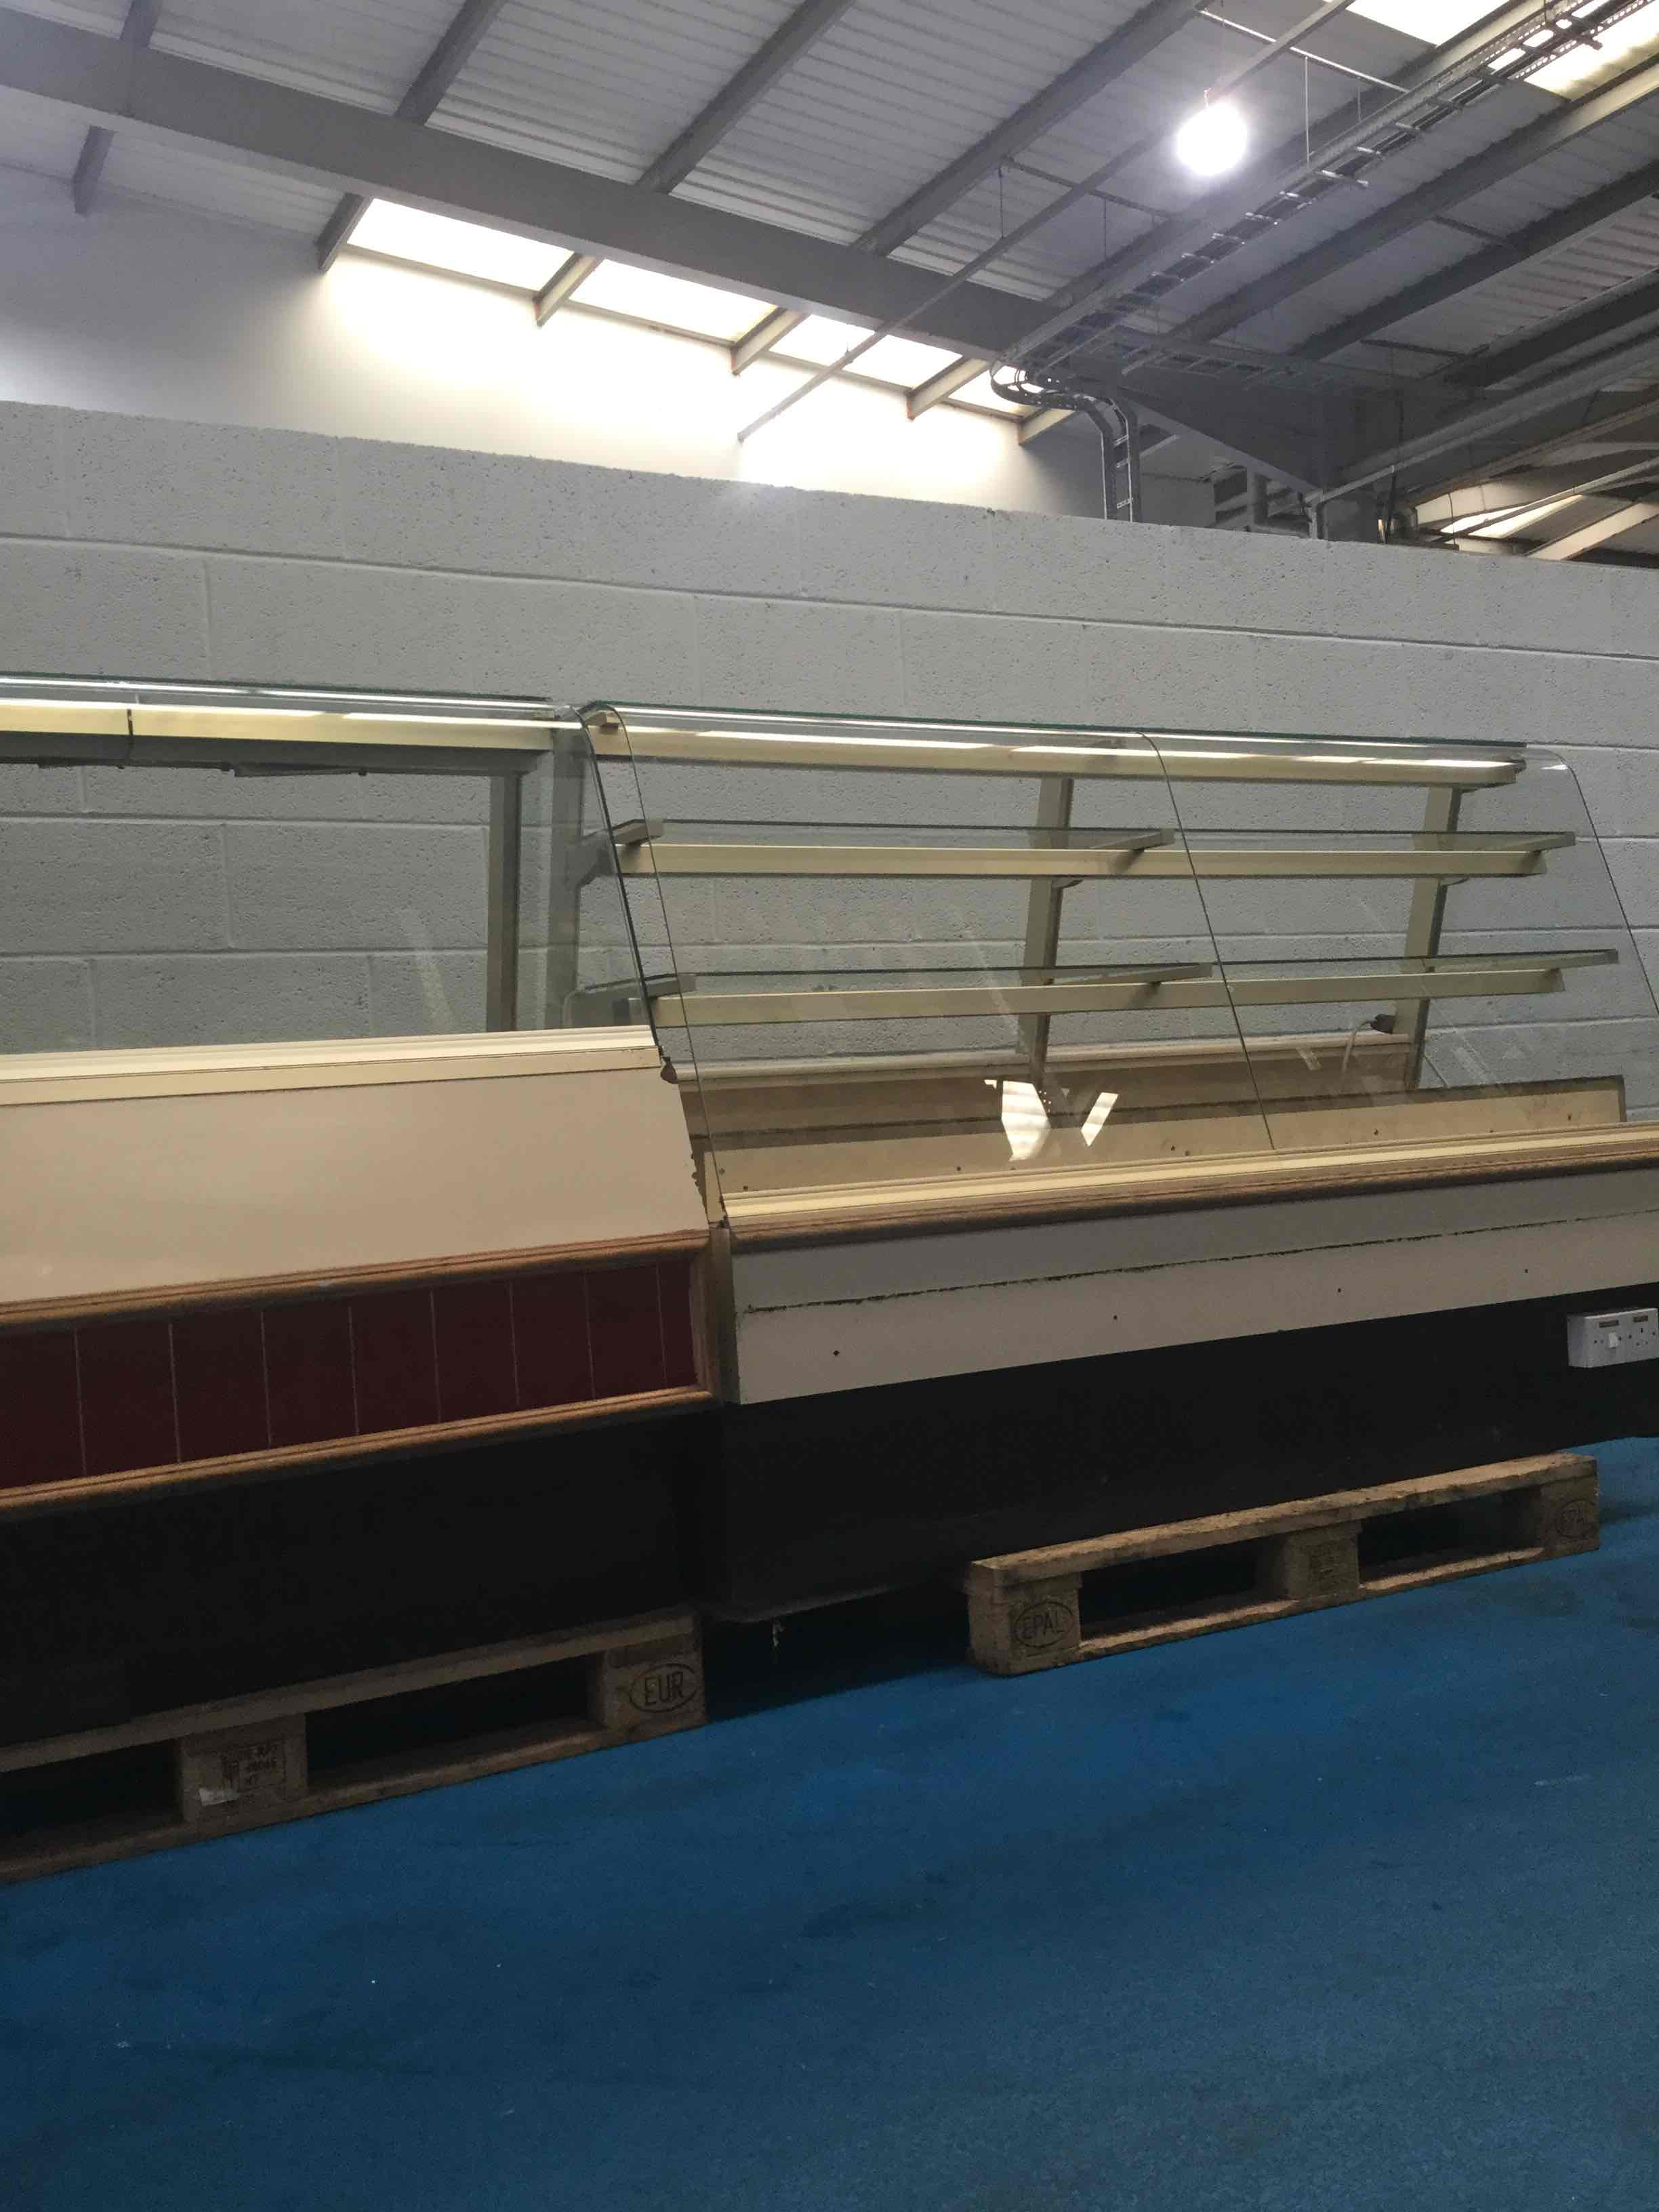 HOT AND COLD SHOP COUNTERS 2M AND 1M, TIDY USEABLE CONDITION, AS IS